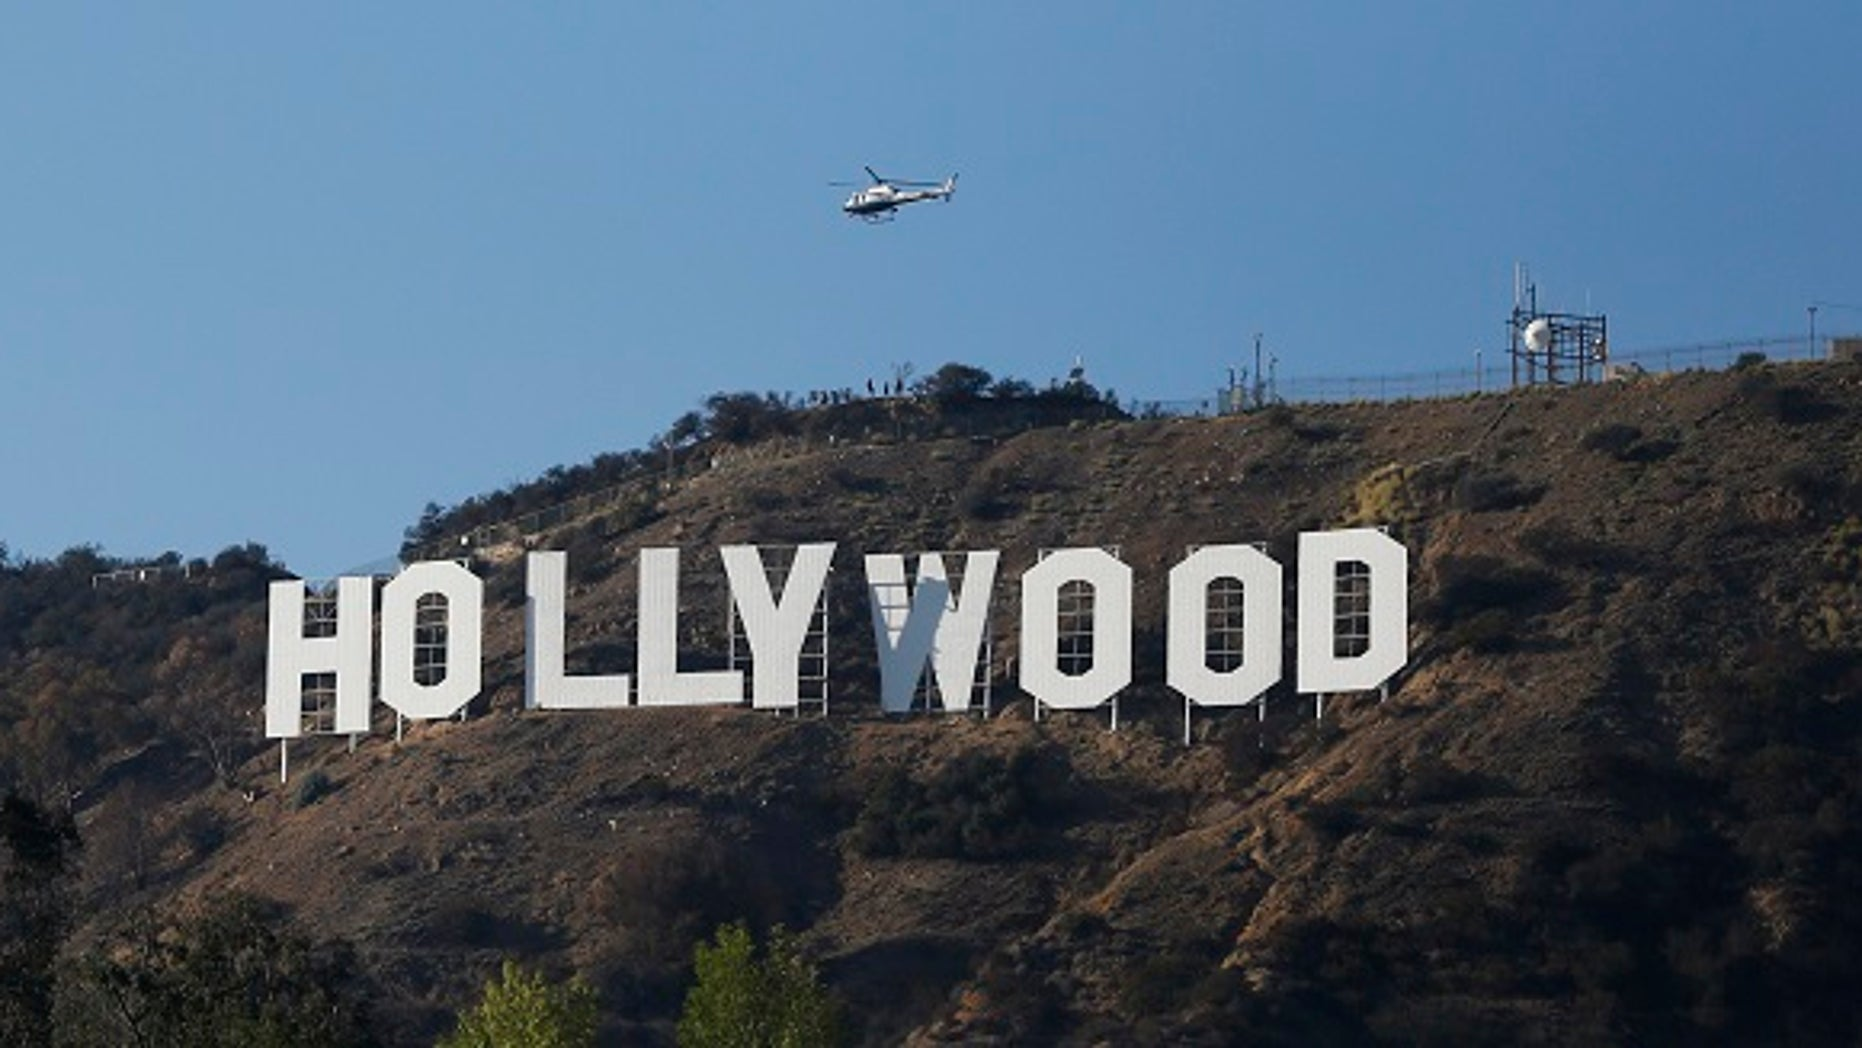 A Los Angeles Police Department (LAPD) helicopter flies over the Hollywood sign in Hollywood, California February 21, 2014. To match TRAVEL-HOLYWOOD  REUTERS/Mario Anzuoni  (UNITED STATES - Tags: ENTERTAINMENT ENVIRONMENT SOCIETY TRAVEL) - RTX19A0U